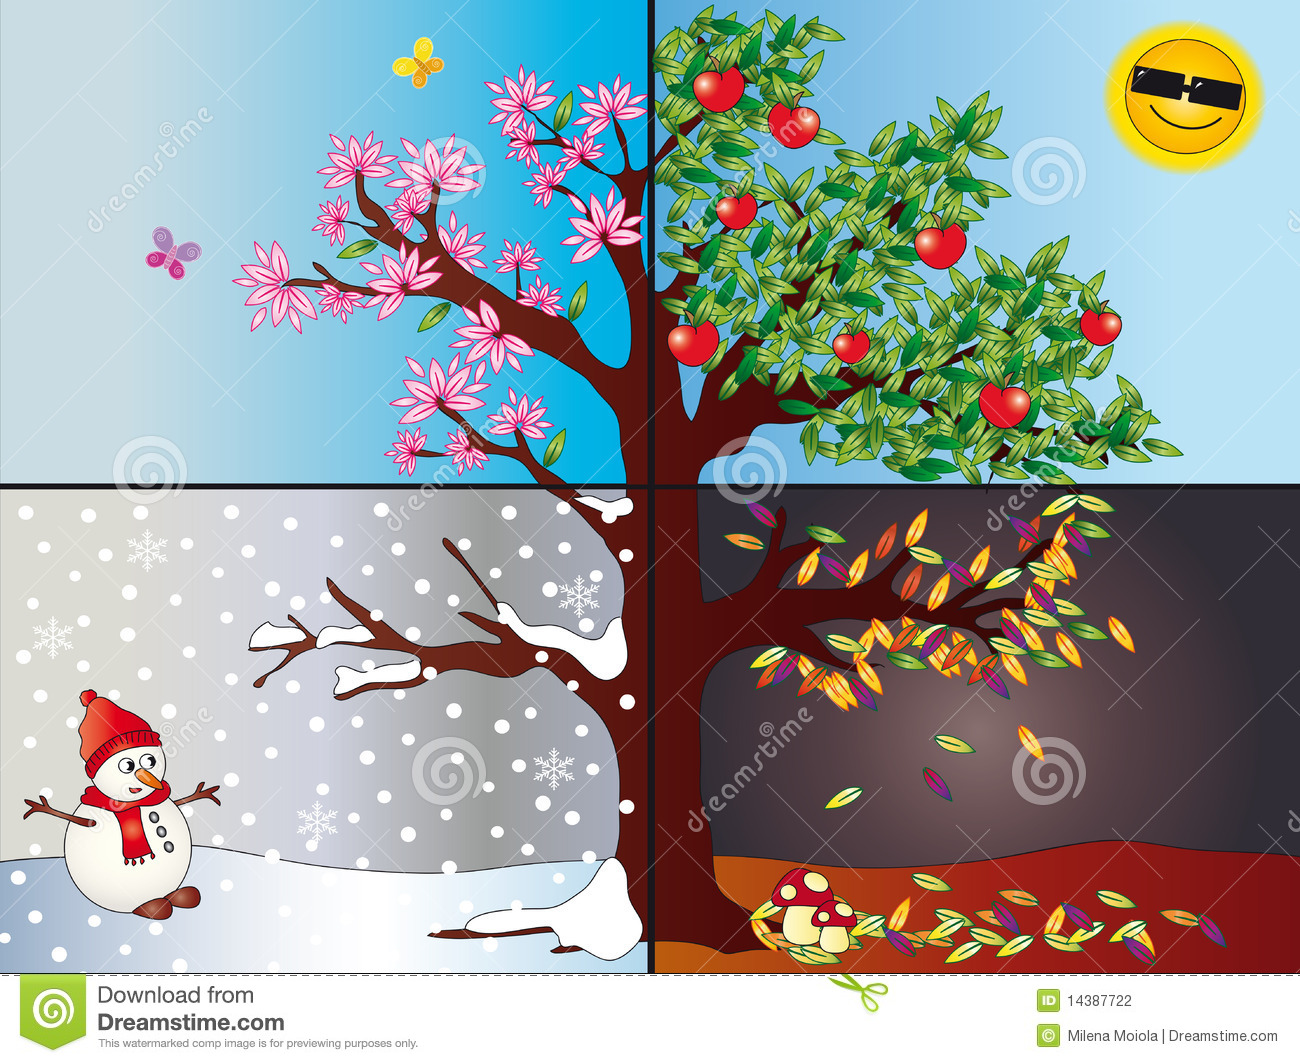 Flowers Clipart Download